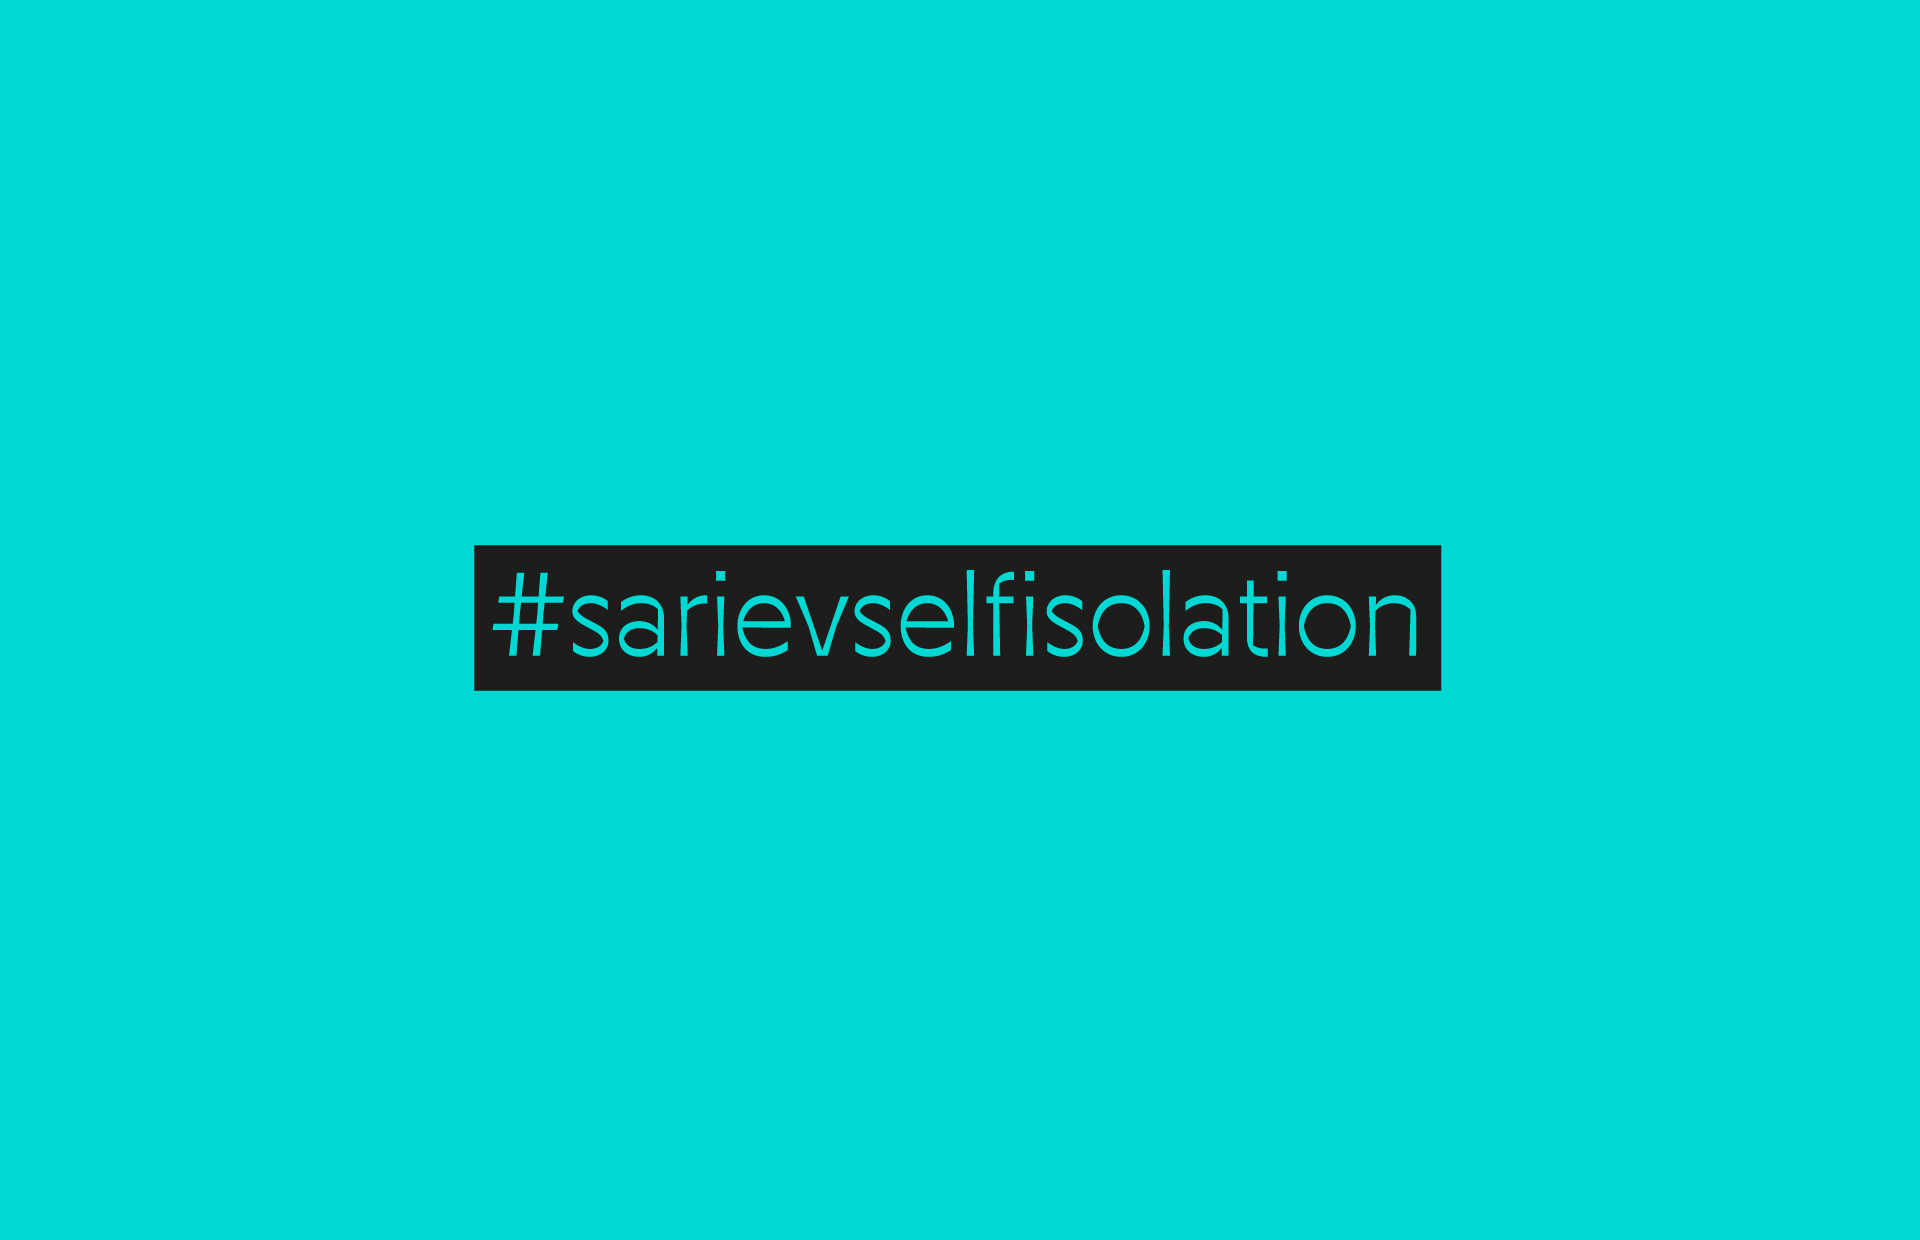 #sarievselfisolation